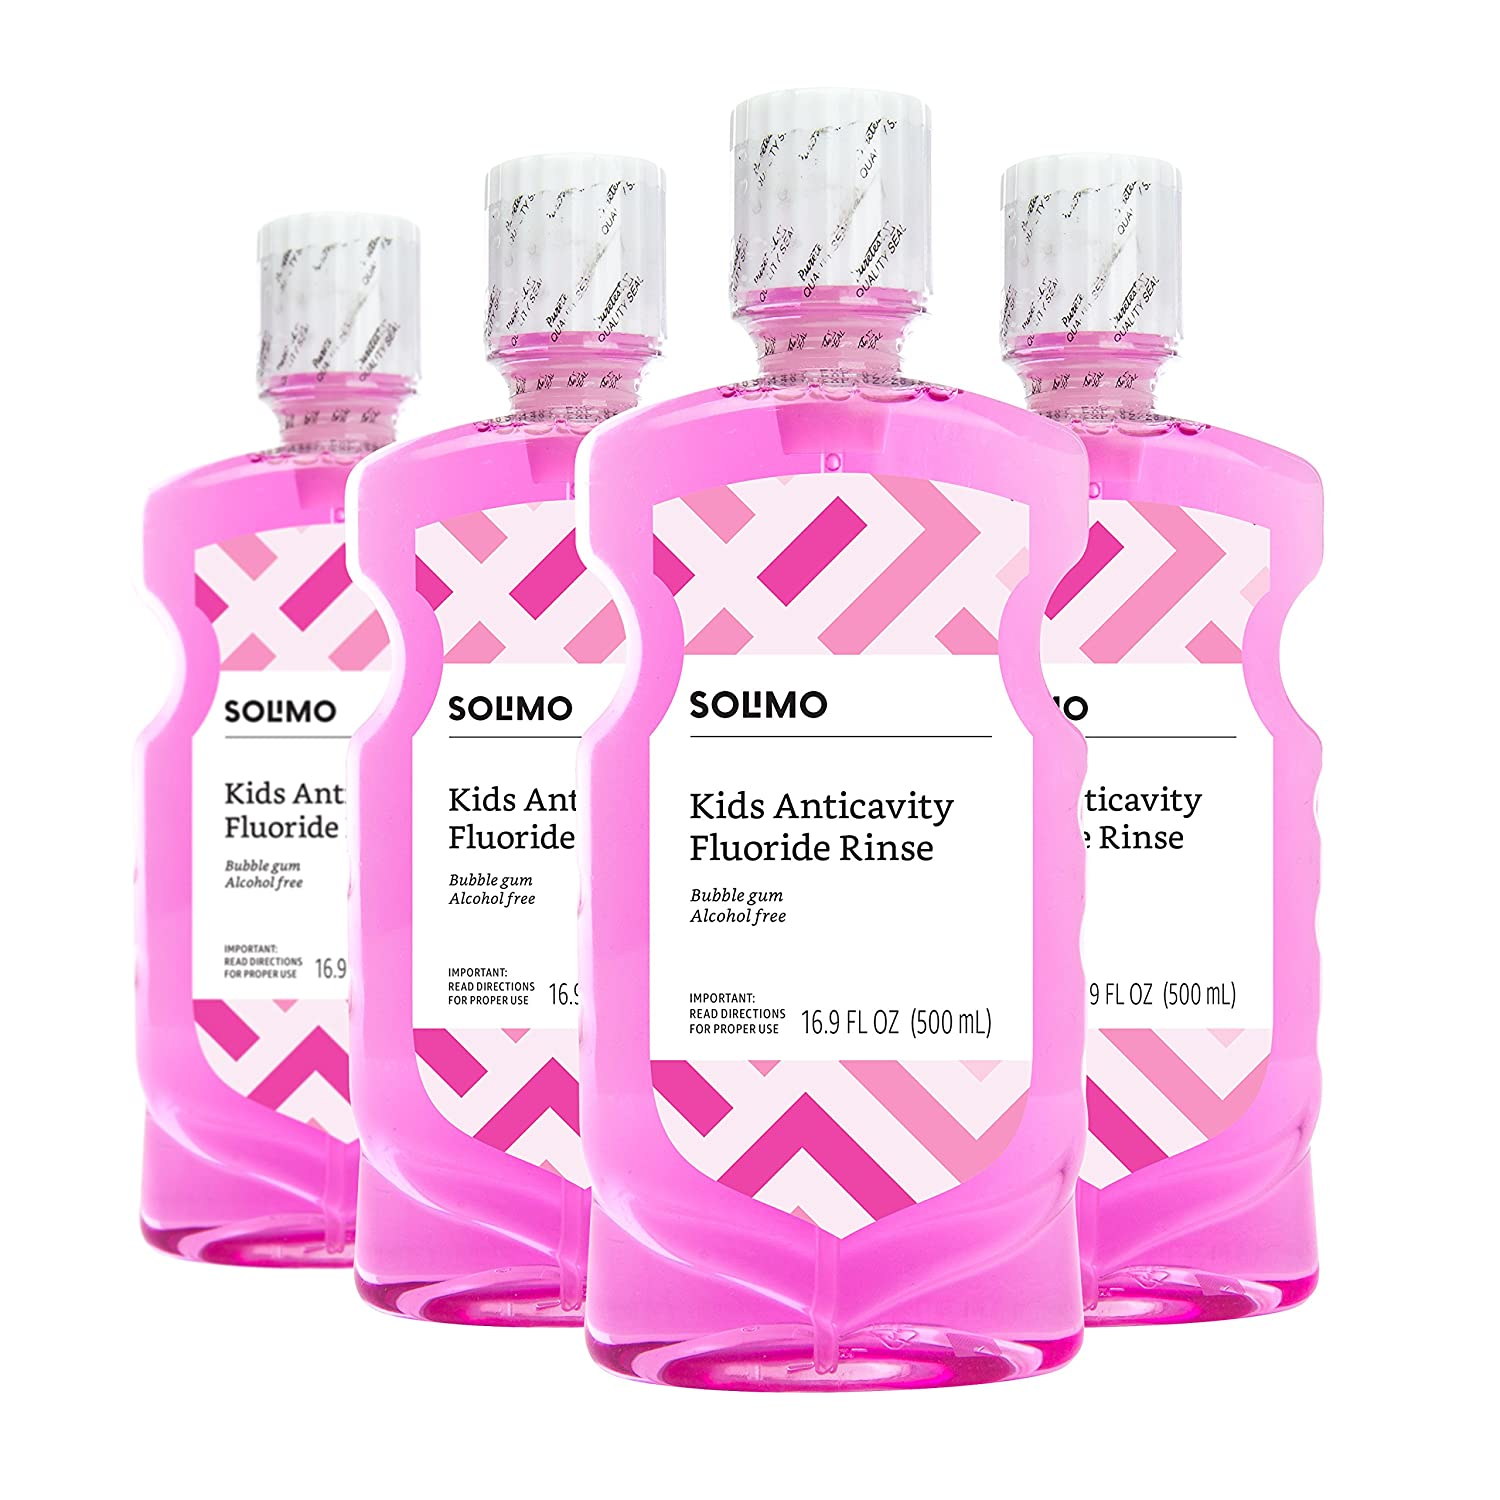 Amazon Brand - Solimo Kids Anticavity Fluoride Rinse, Alcohol Free, Bubble Gum, 500 mL (Pack of 4)